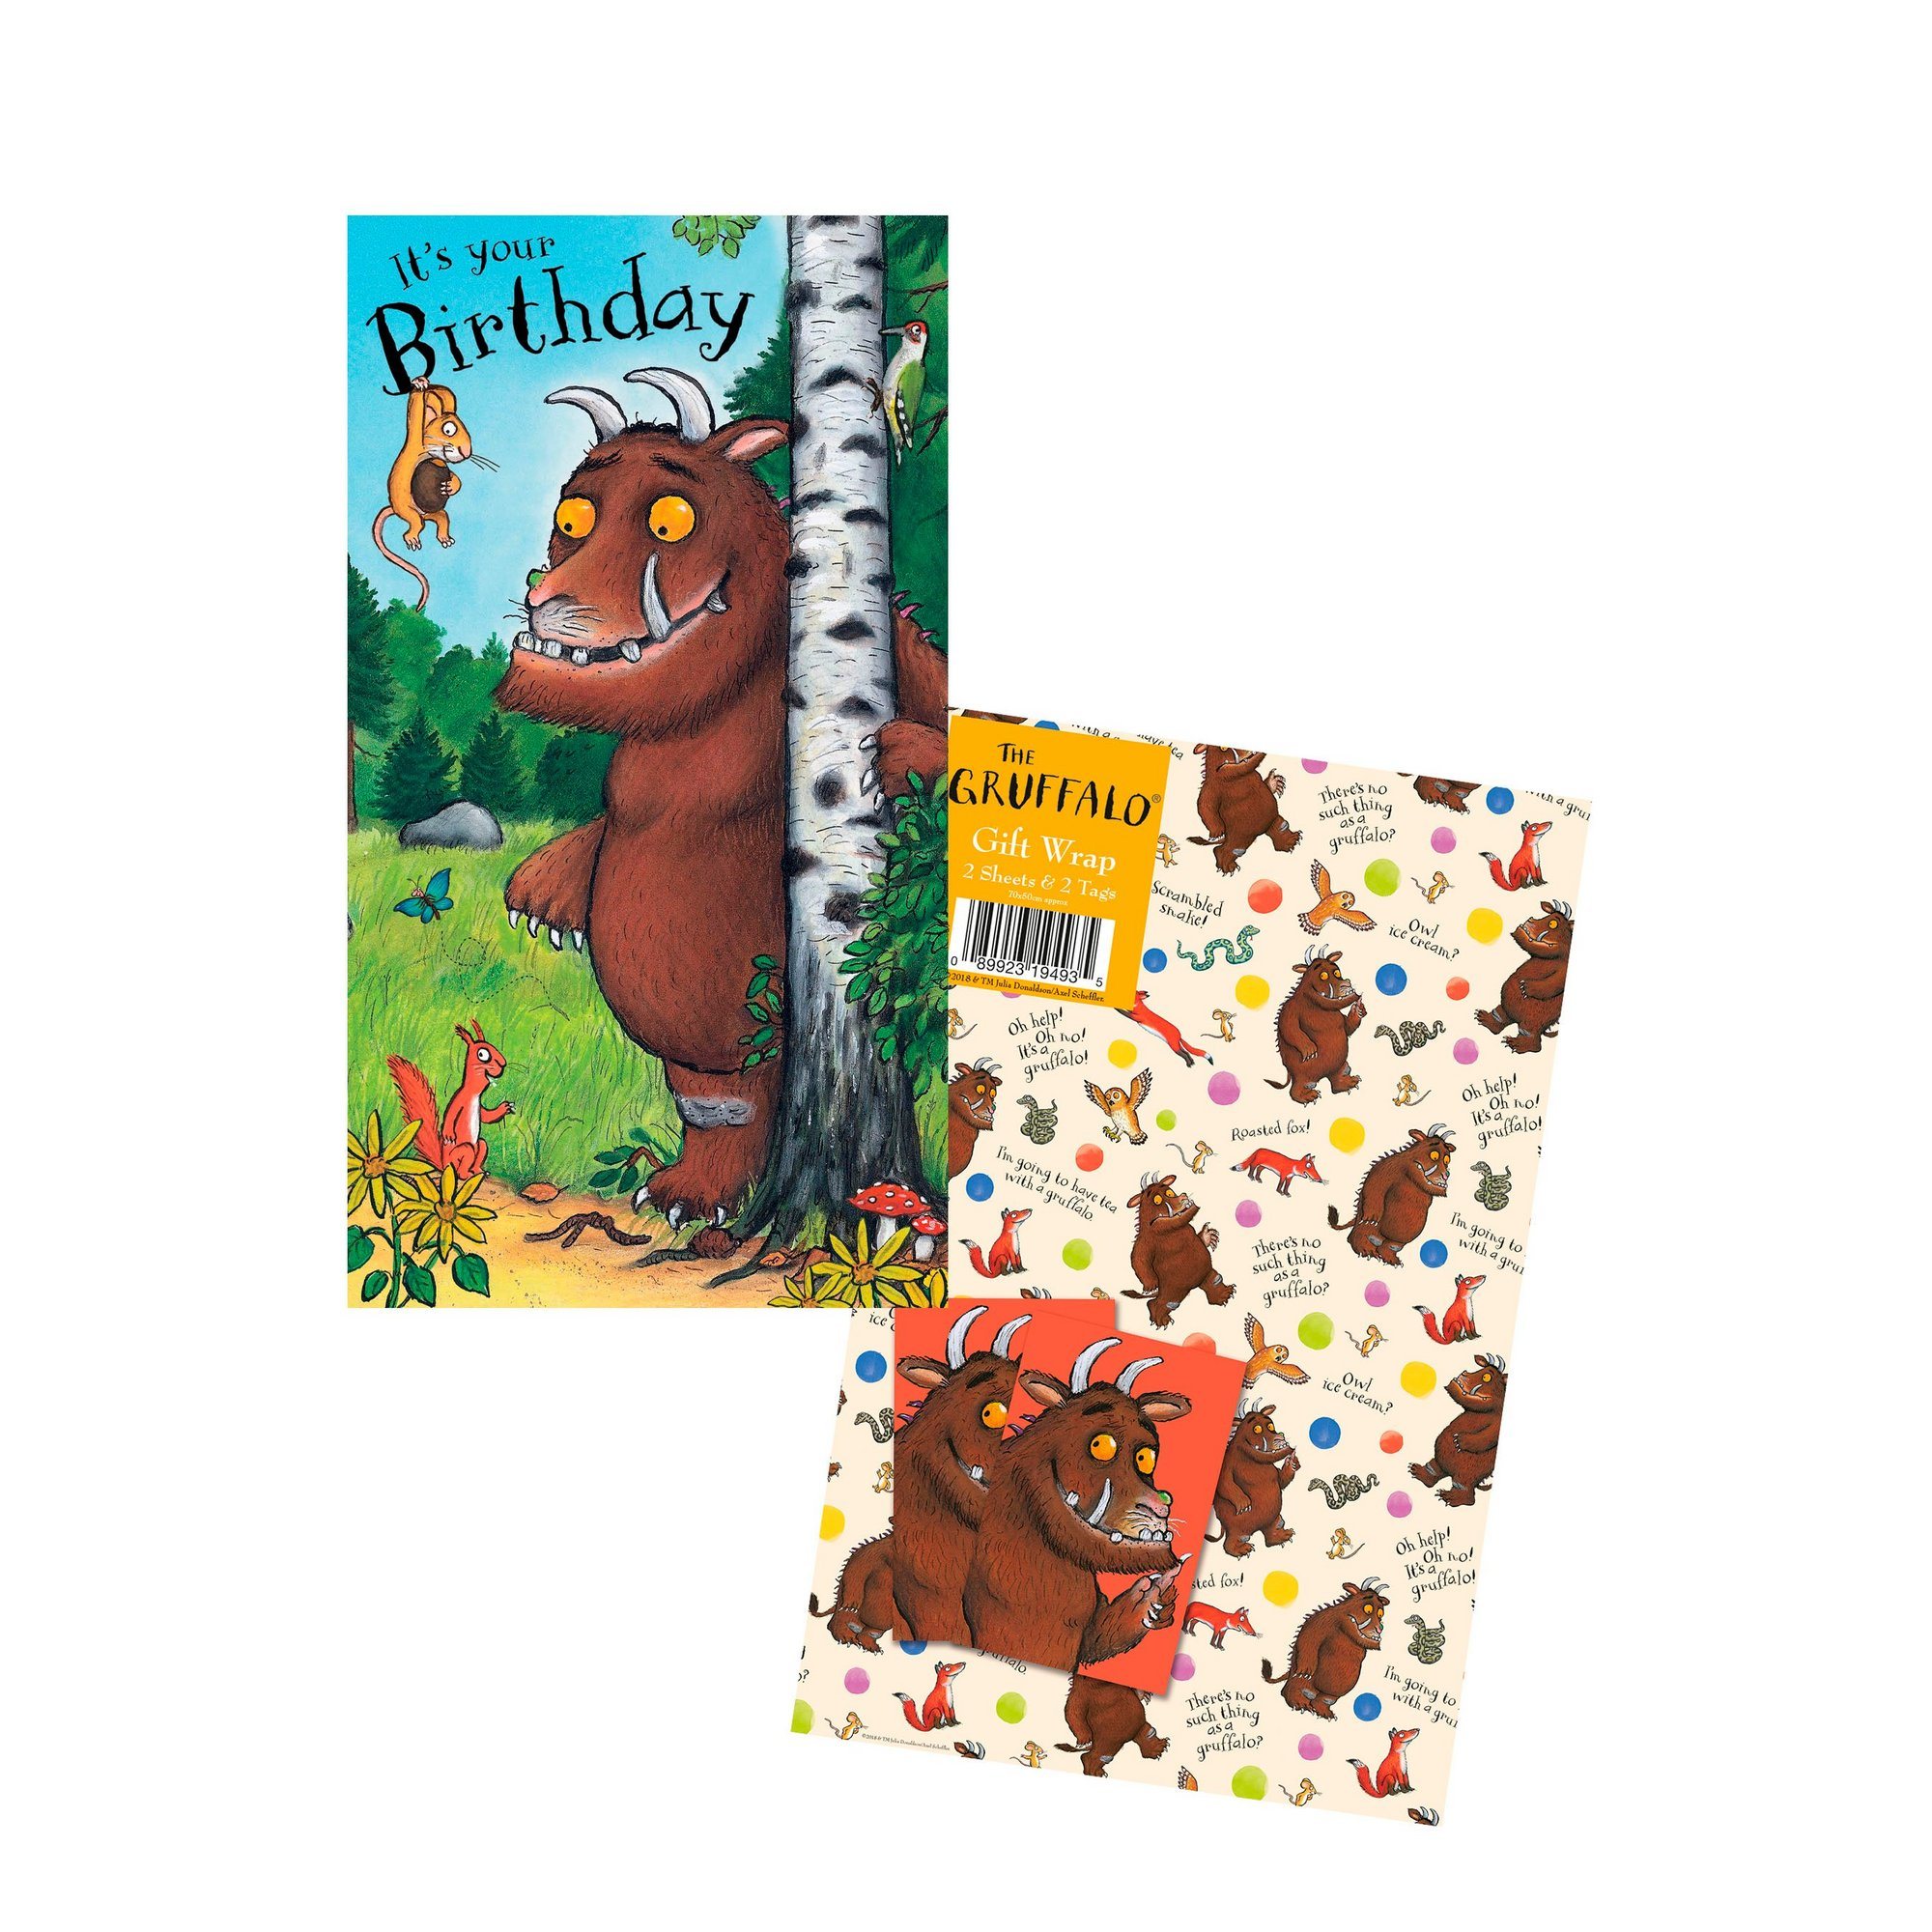 Image of Gruffalo Birthday Card and Gift Wrap